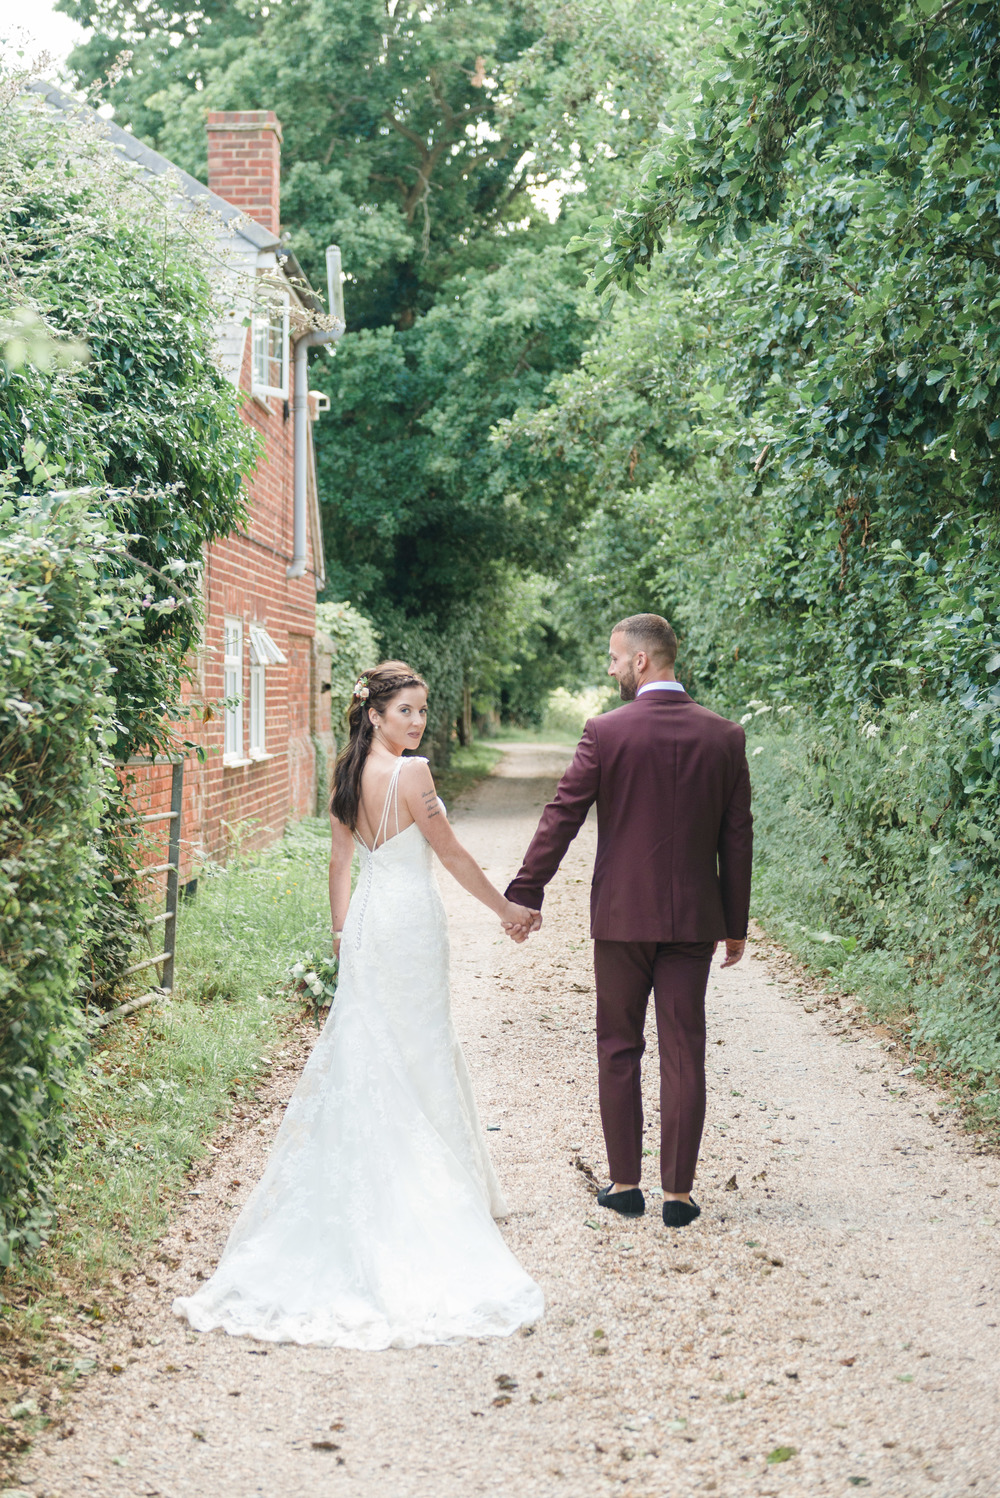 hannah-mcclune-photography-mill-house-hotel-swallowfield-rustic-wedding-burgundy-and-peach-wedding-42